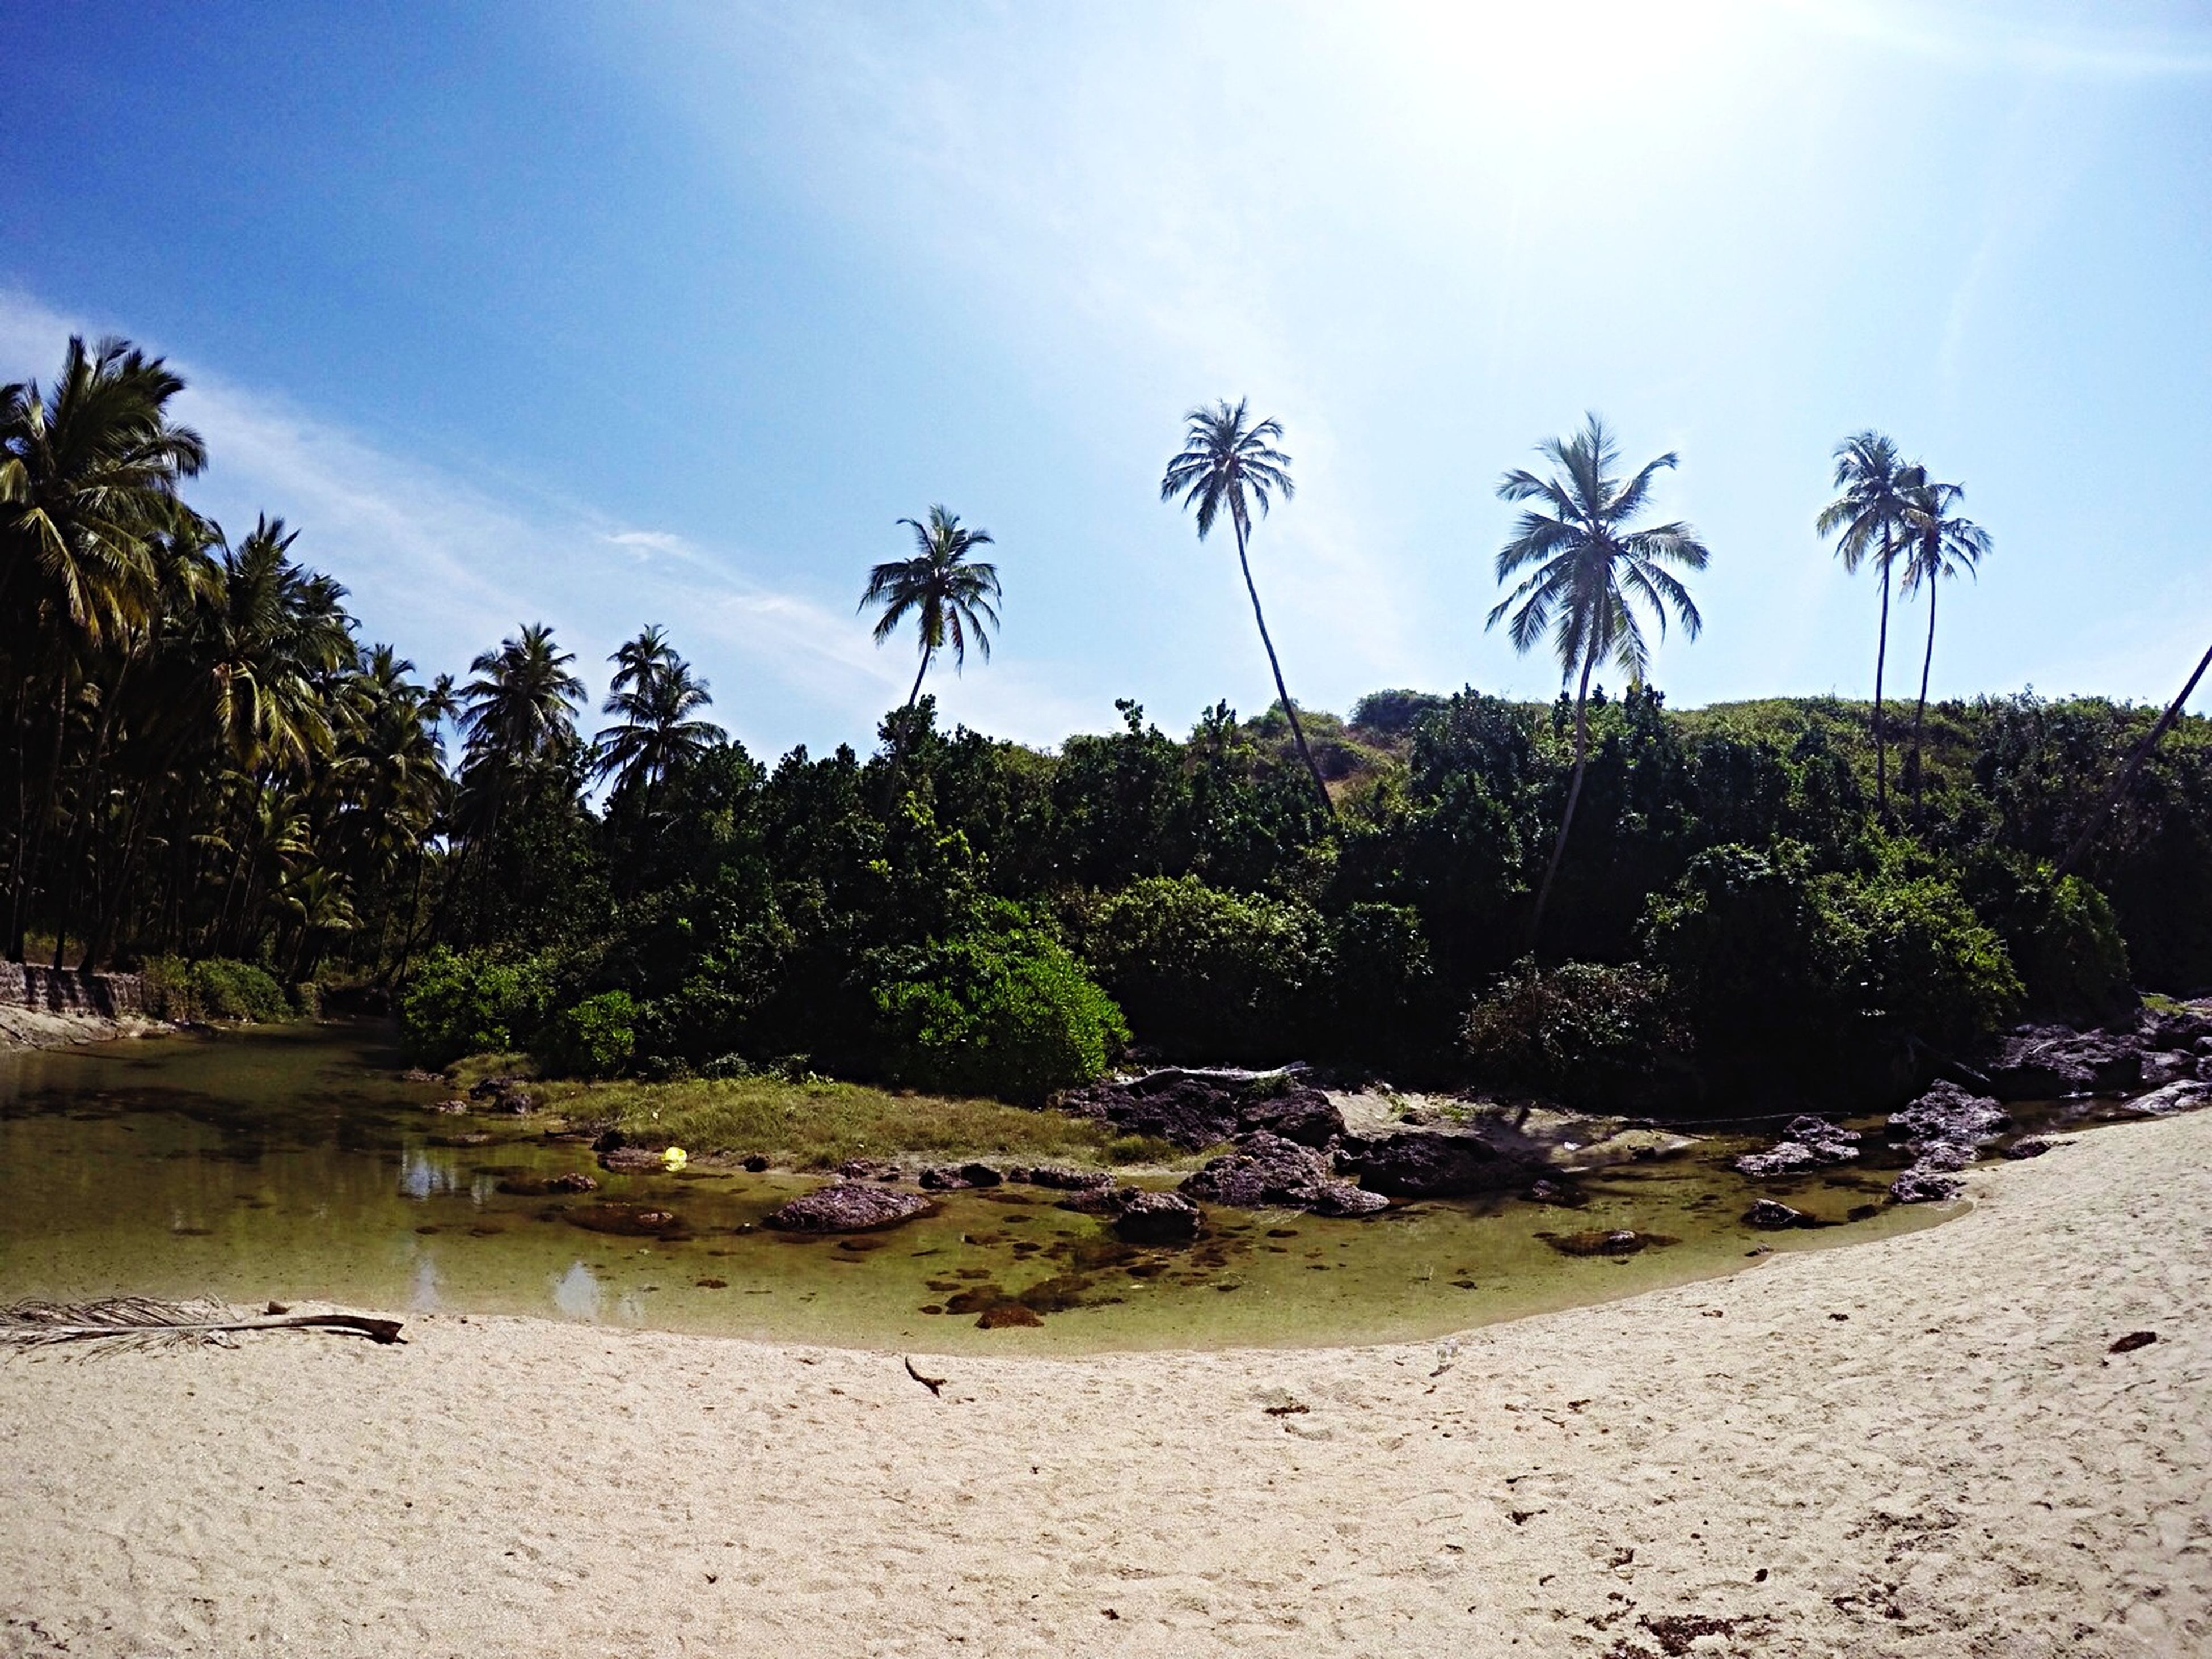 tree, sky, palm tree, tranquility, tranquil scene, beach, growth, scenics, nature, beauty in nature, water, sand, sunlight, shore, day, cloud - sky, blue, non-urban scene, cloud, sea